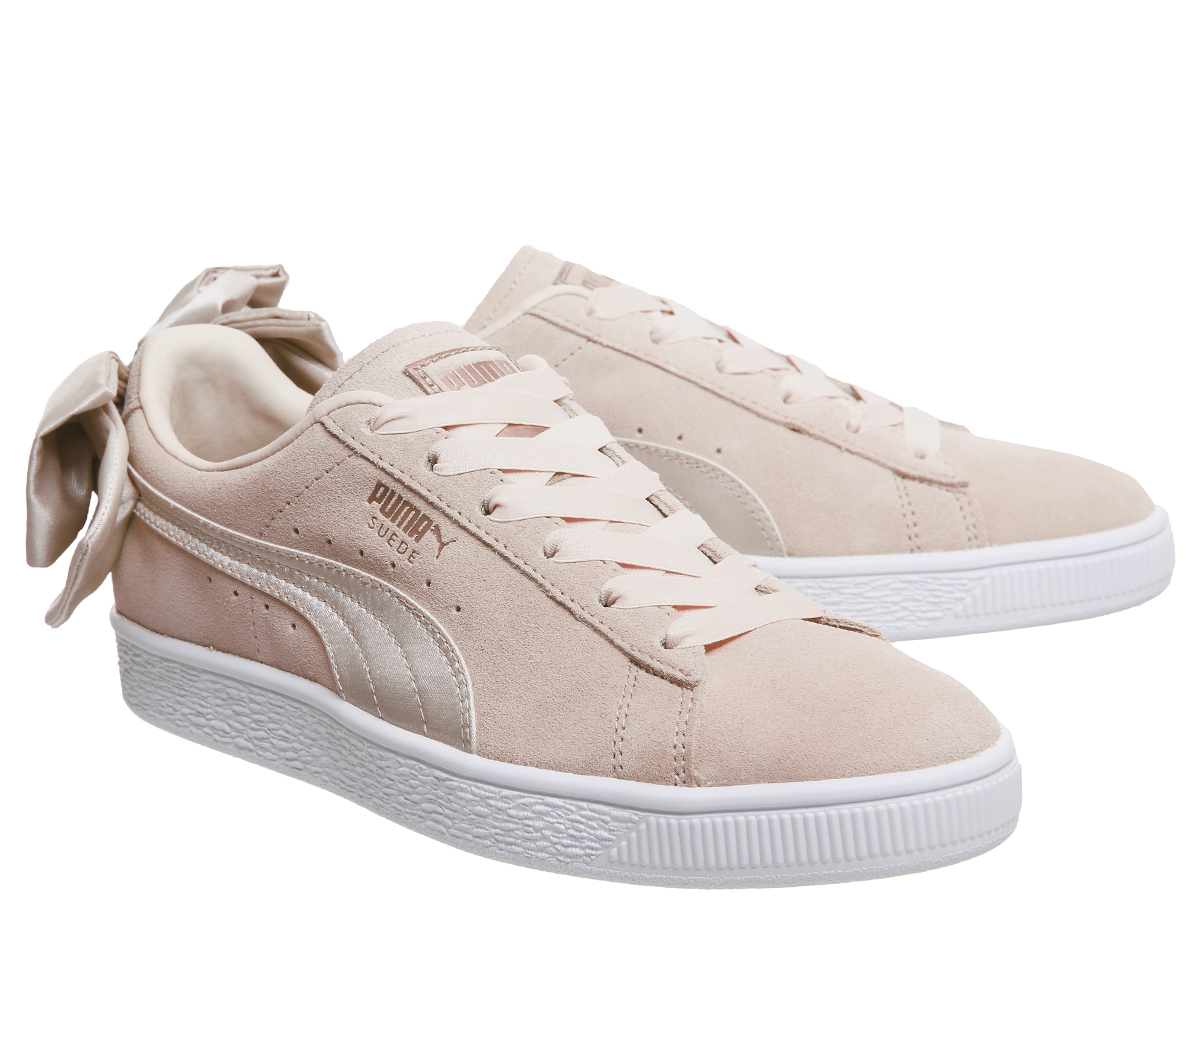 0ecea0d1a99b1f Sentinel Womens Puma Suede Bow Trainers CREAM TAN VALENTINE Trainers Shoes